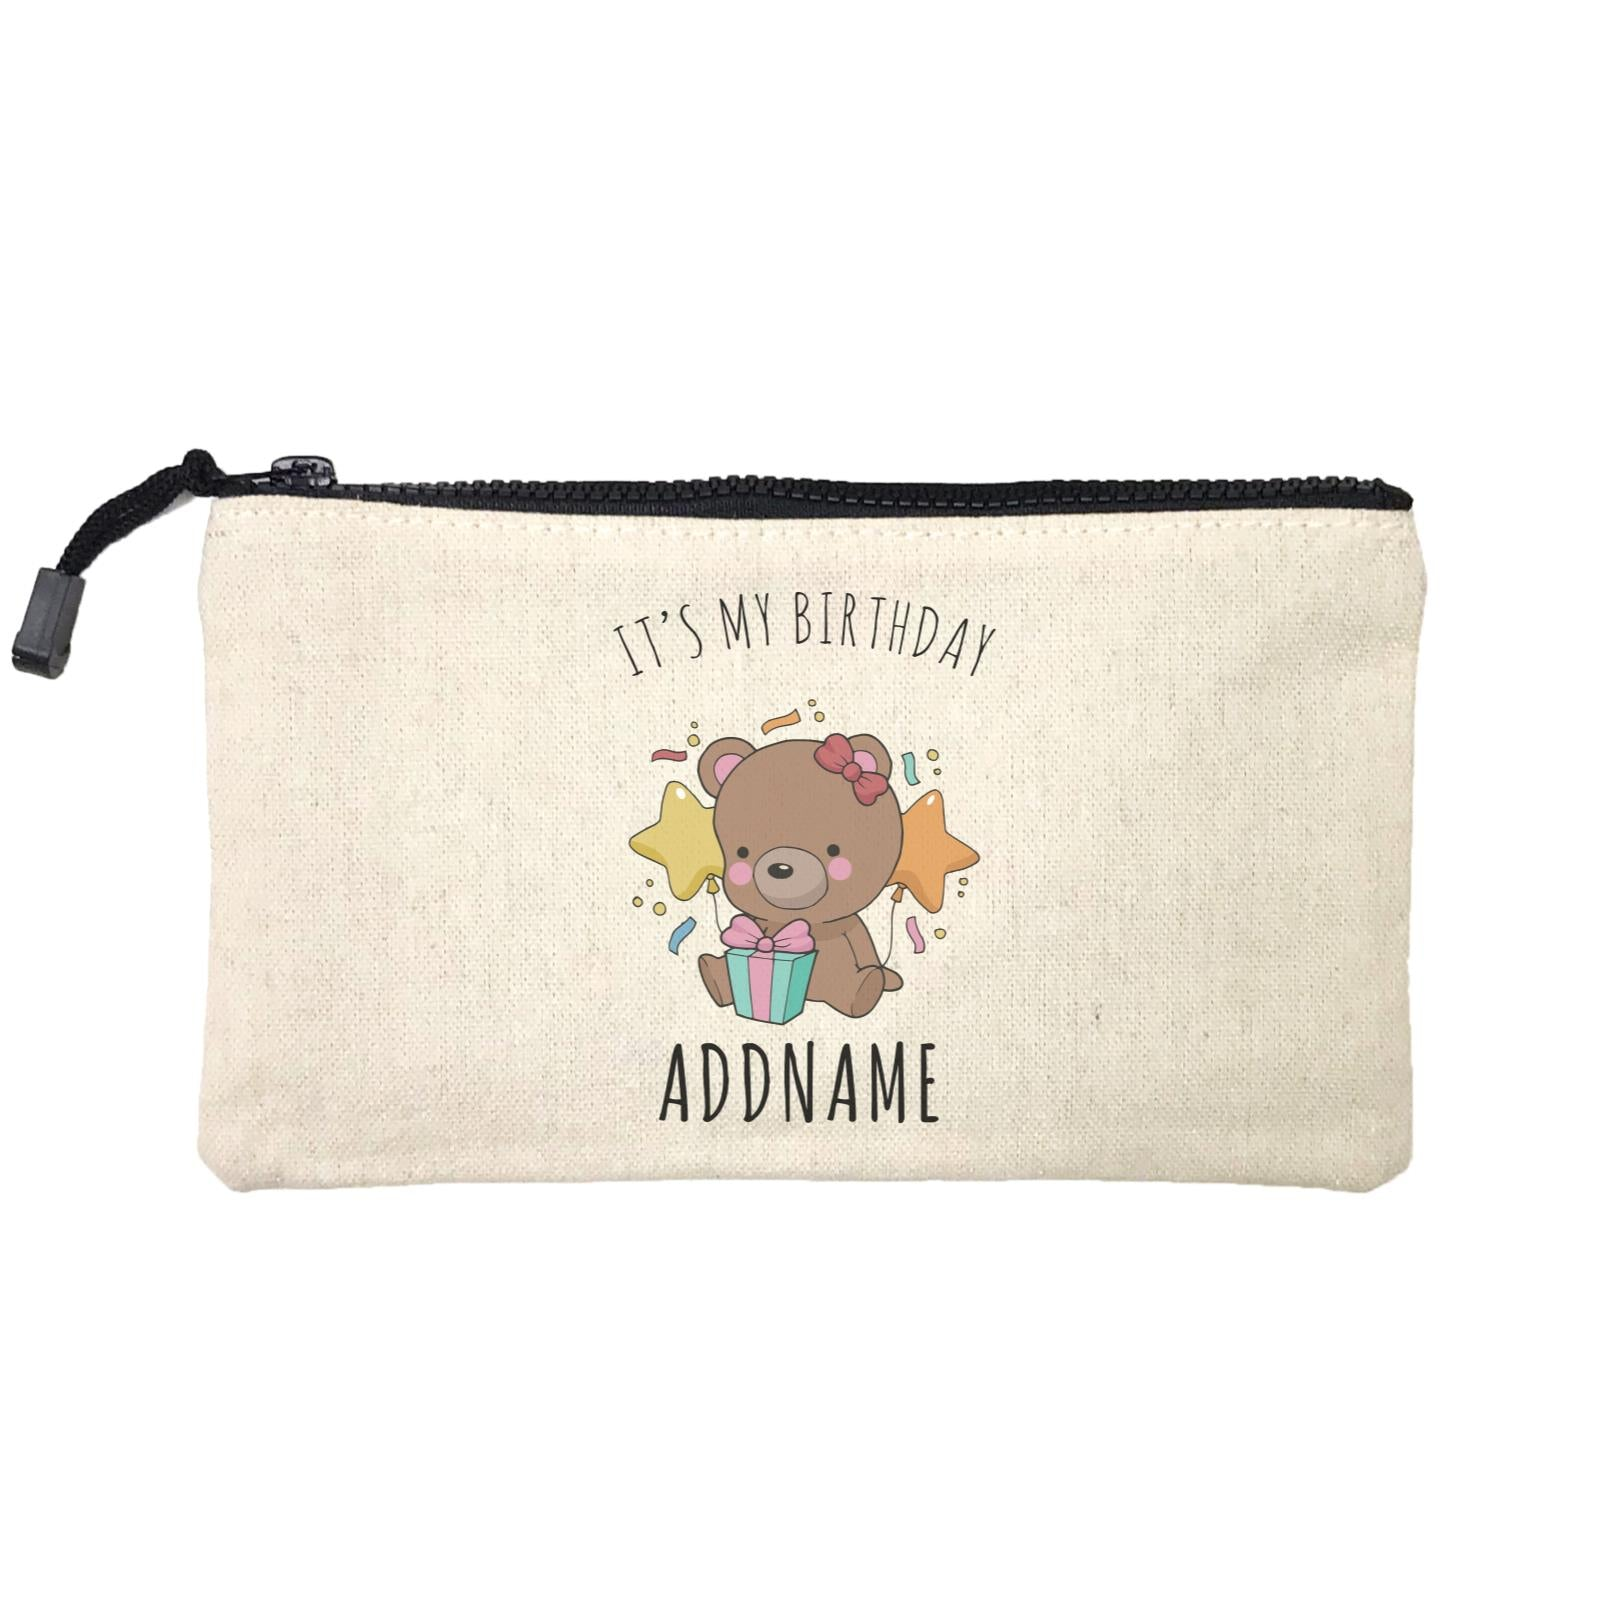 Birthday Sketch Animals Bear with Present It's My Birthday Addname Mini Accessories Stationery Pouch